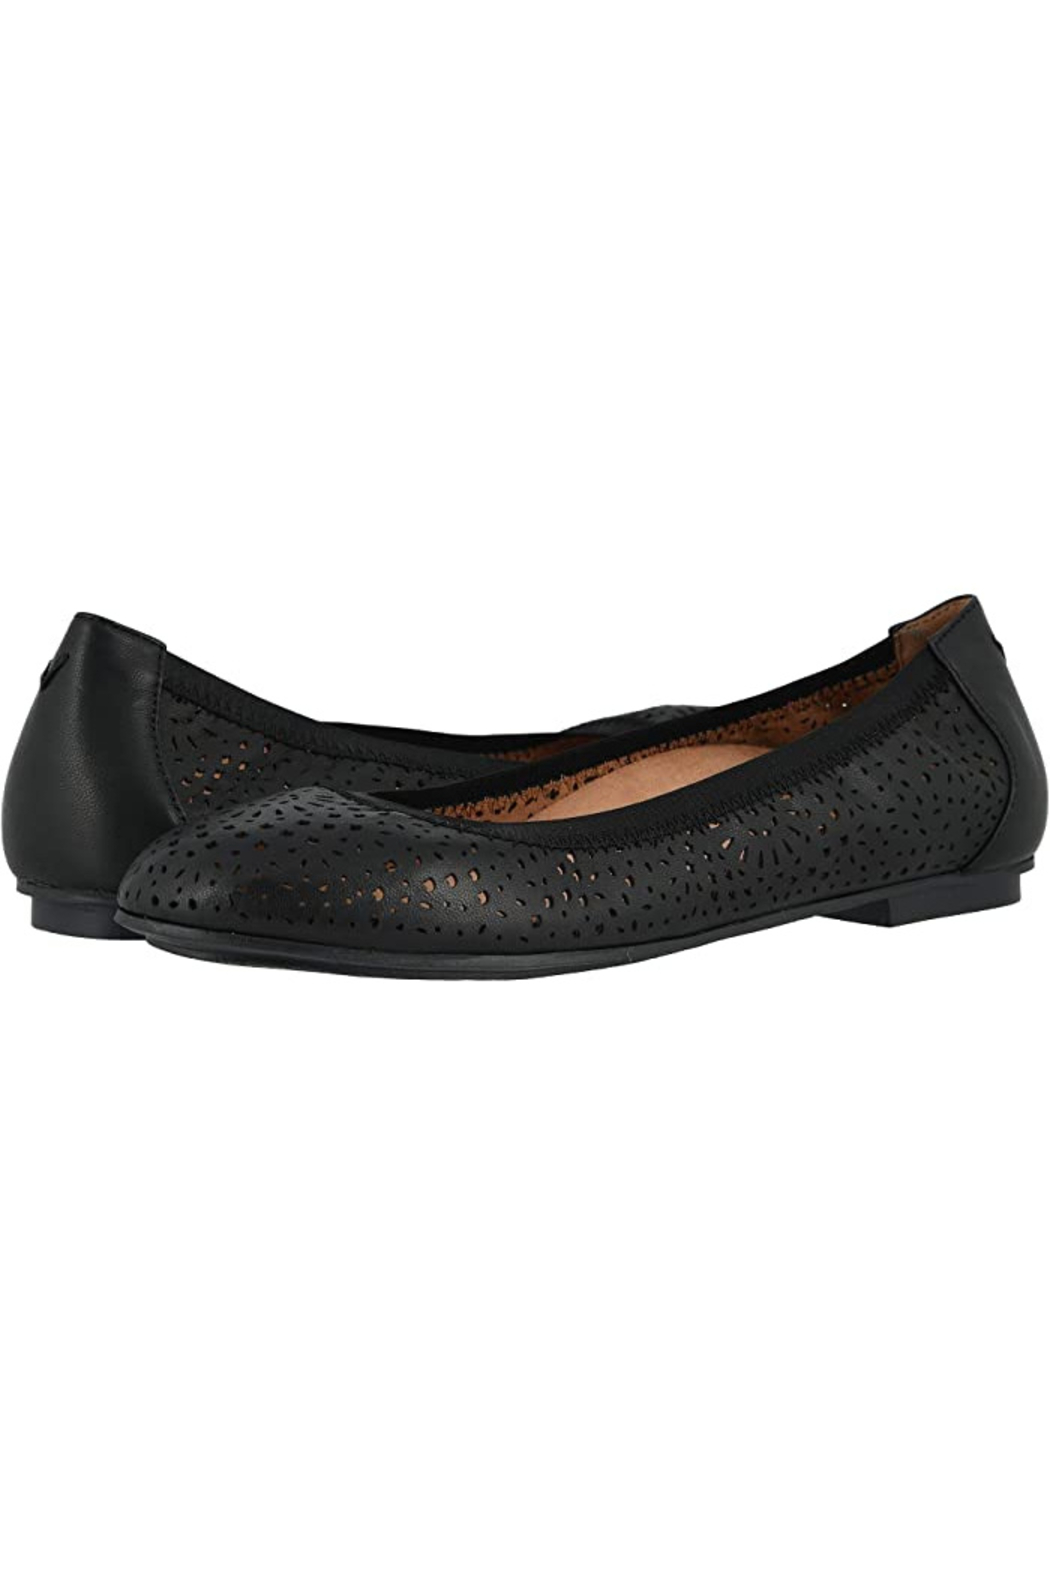 Vionic Robyn Perf Ballet Flat - Back Cropped Image